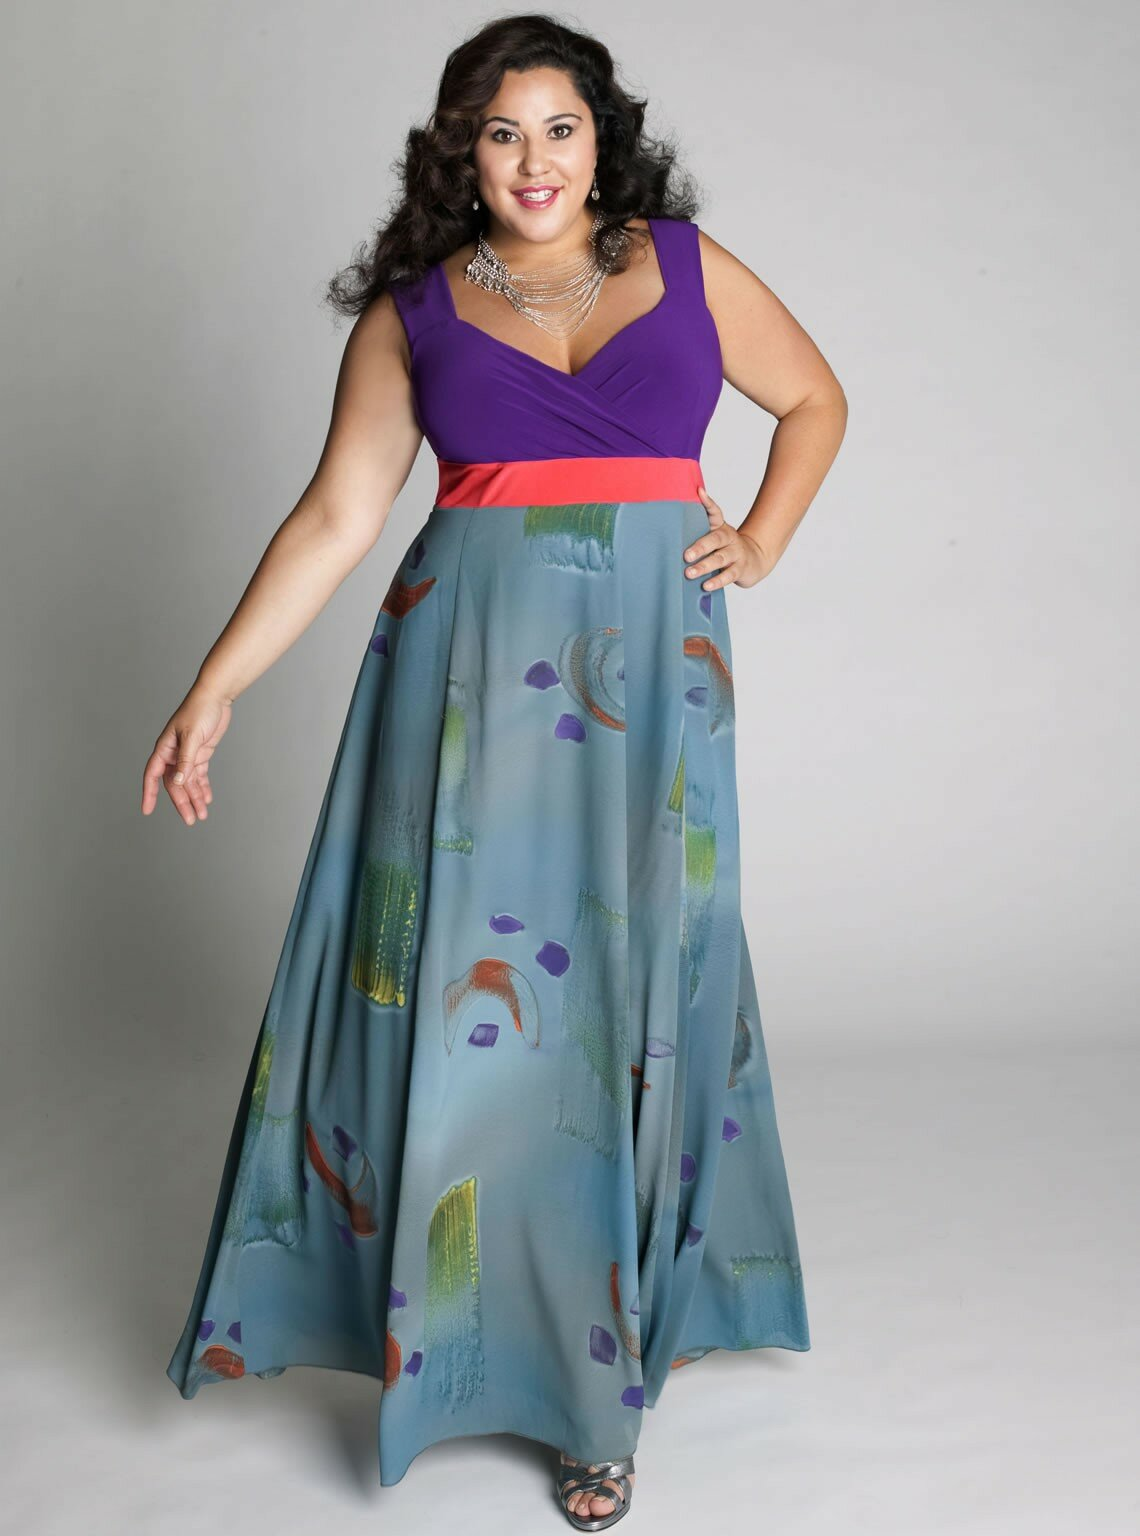 Plus size dresses for weddings: Pictures ideas, Guide to buying ...